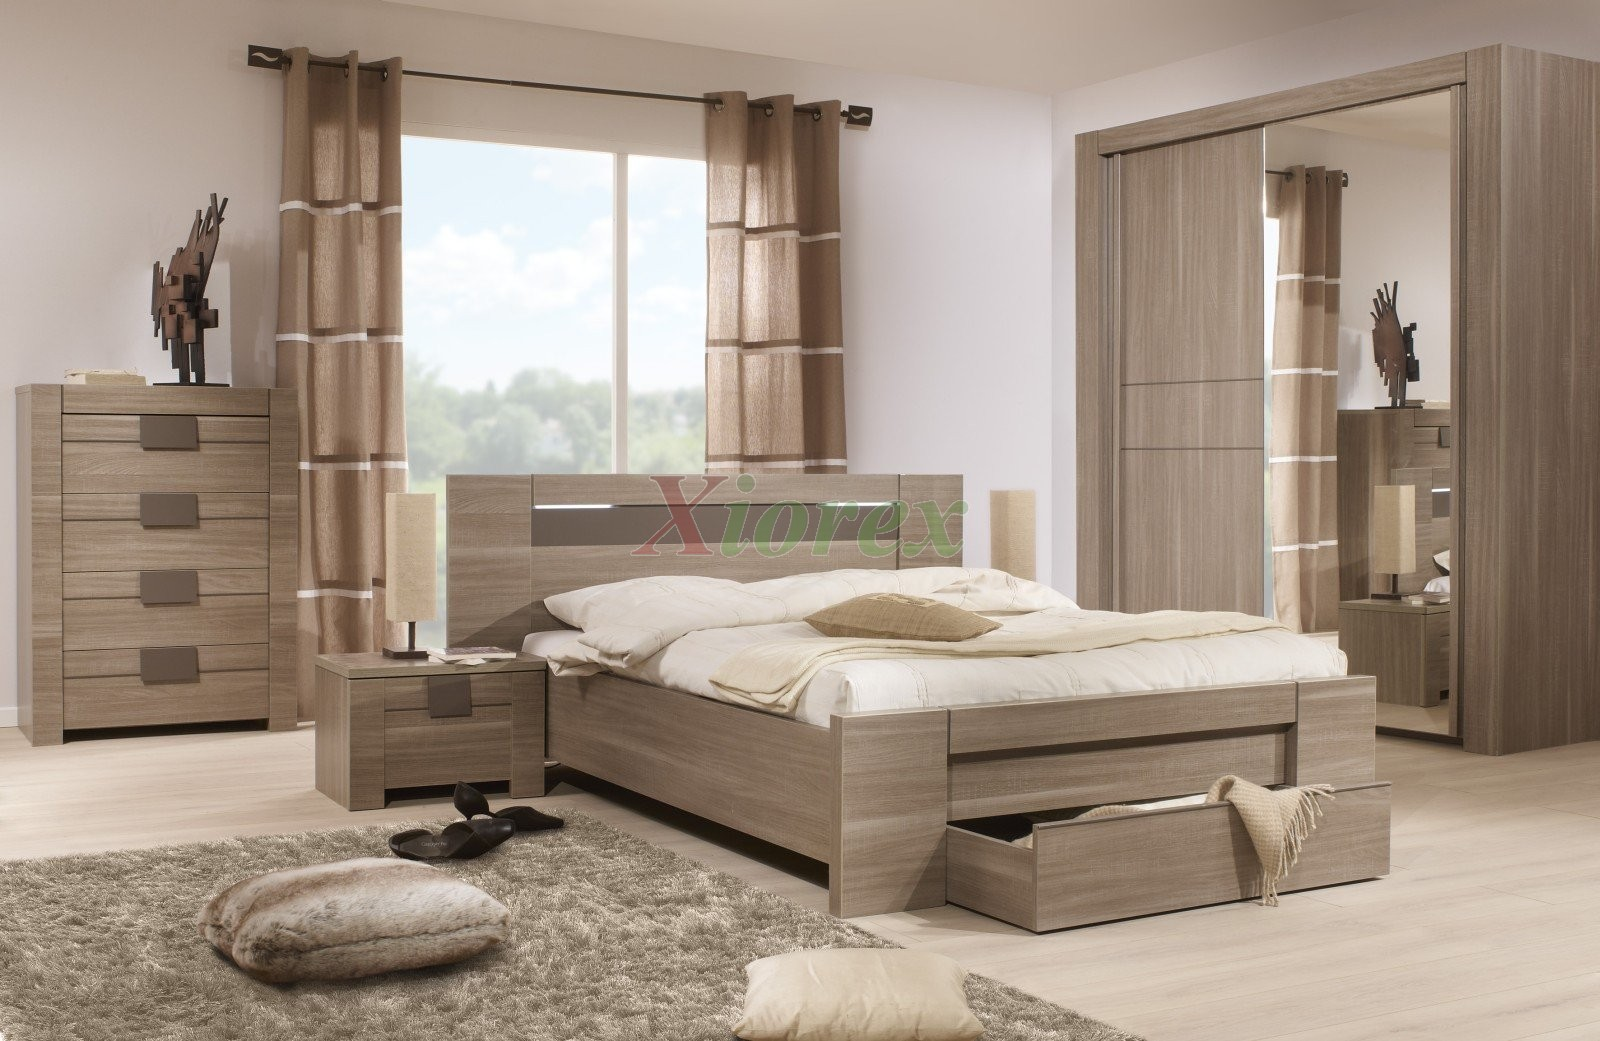 Lit Gautier Calypso Gautier Bedroom Furniture Best Interior Furniture